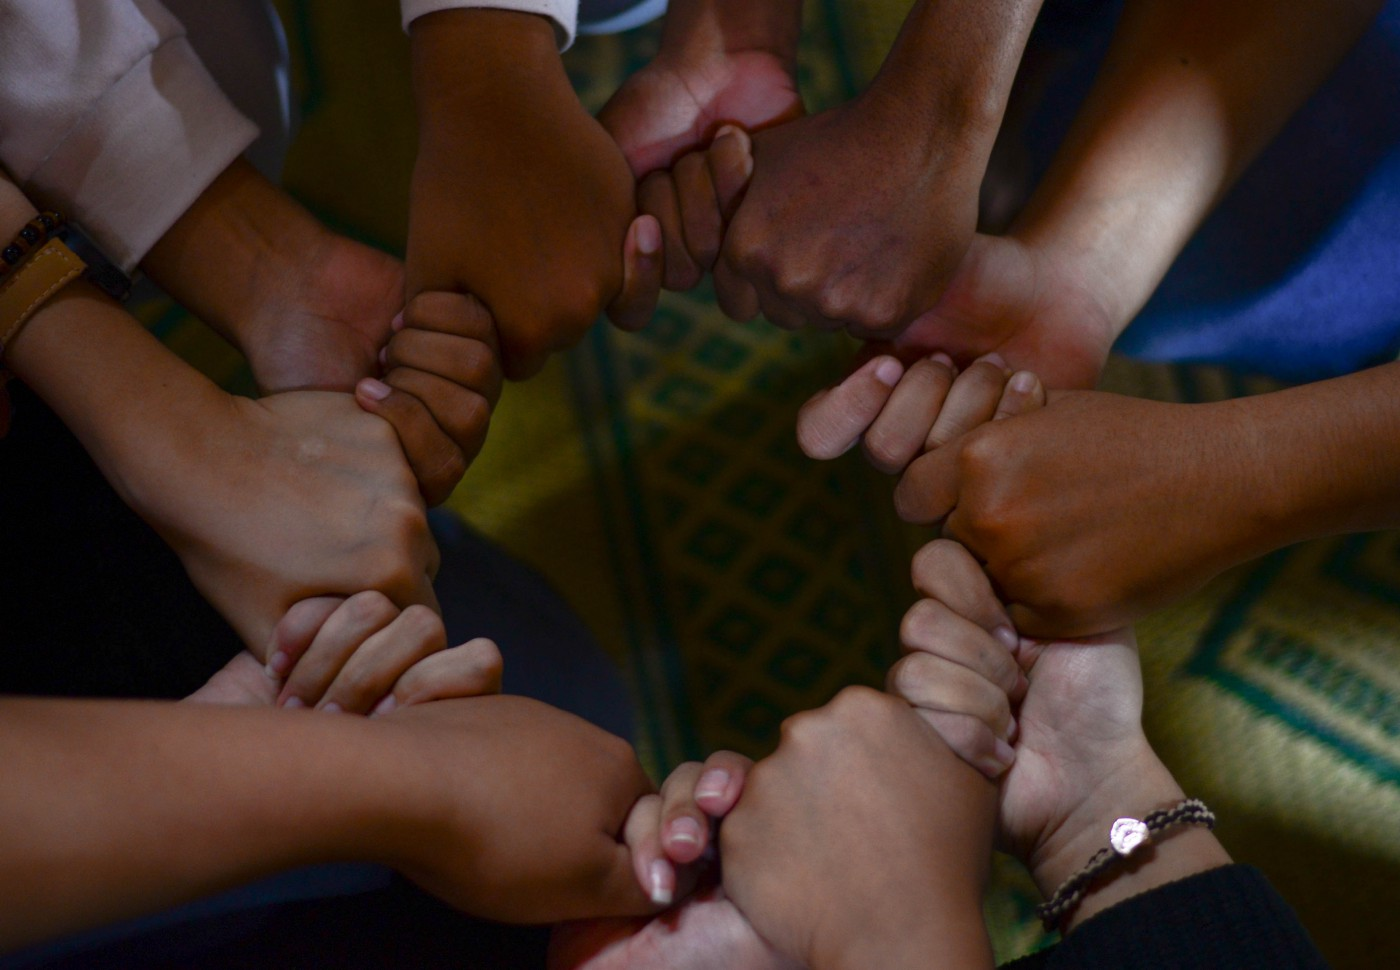 Hands clasped together forming a circle.